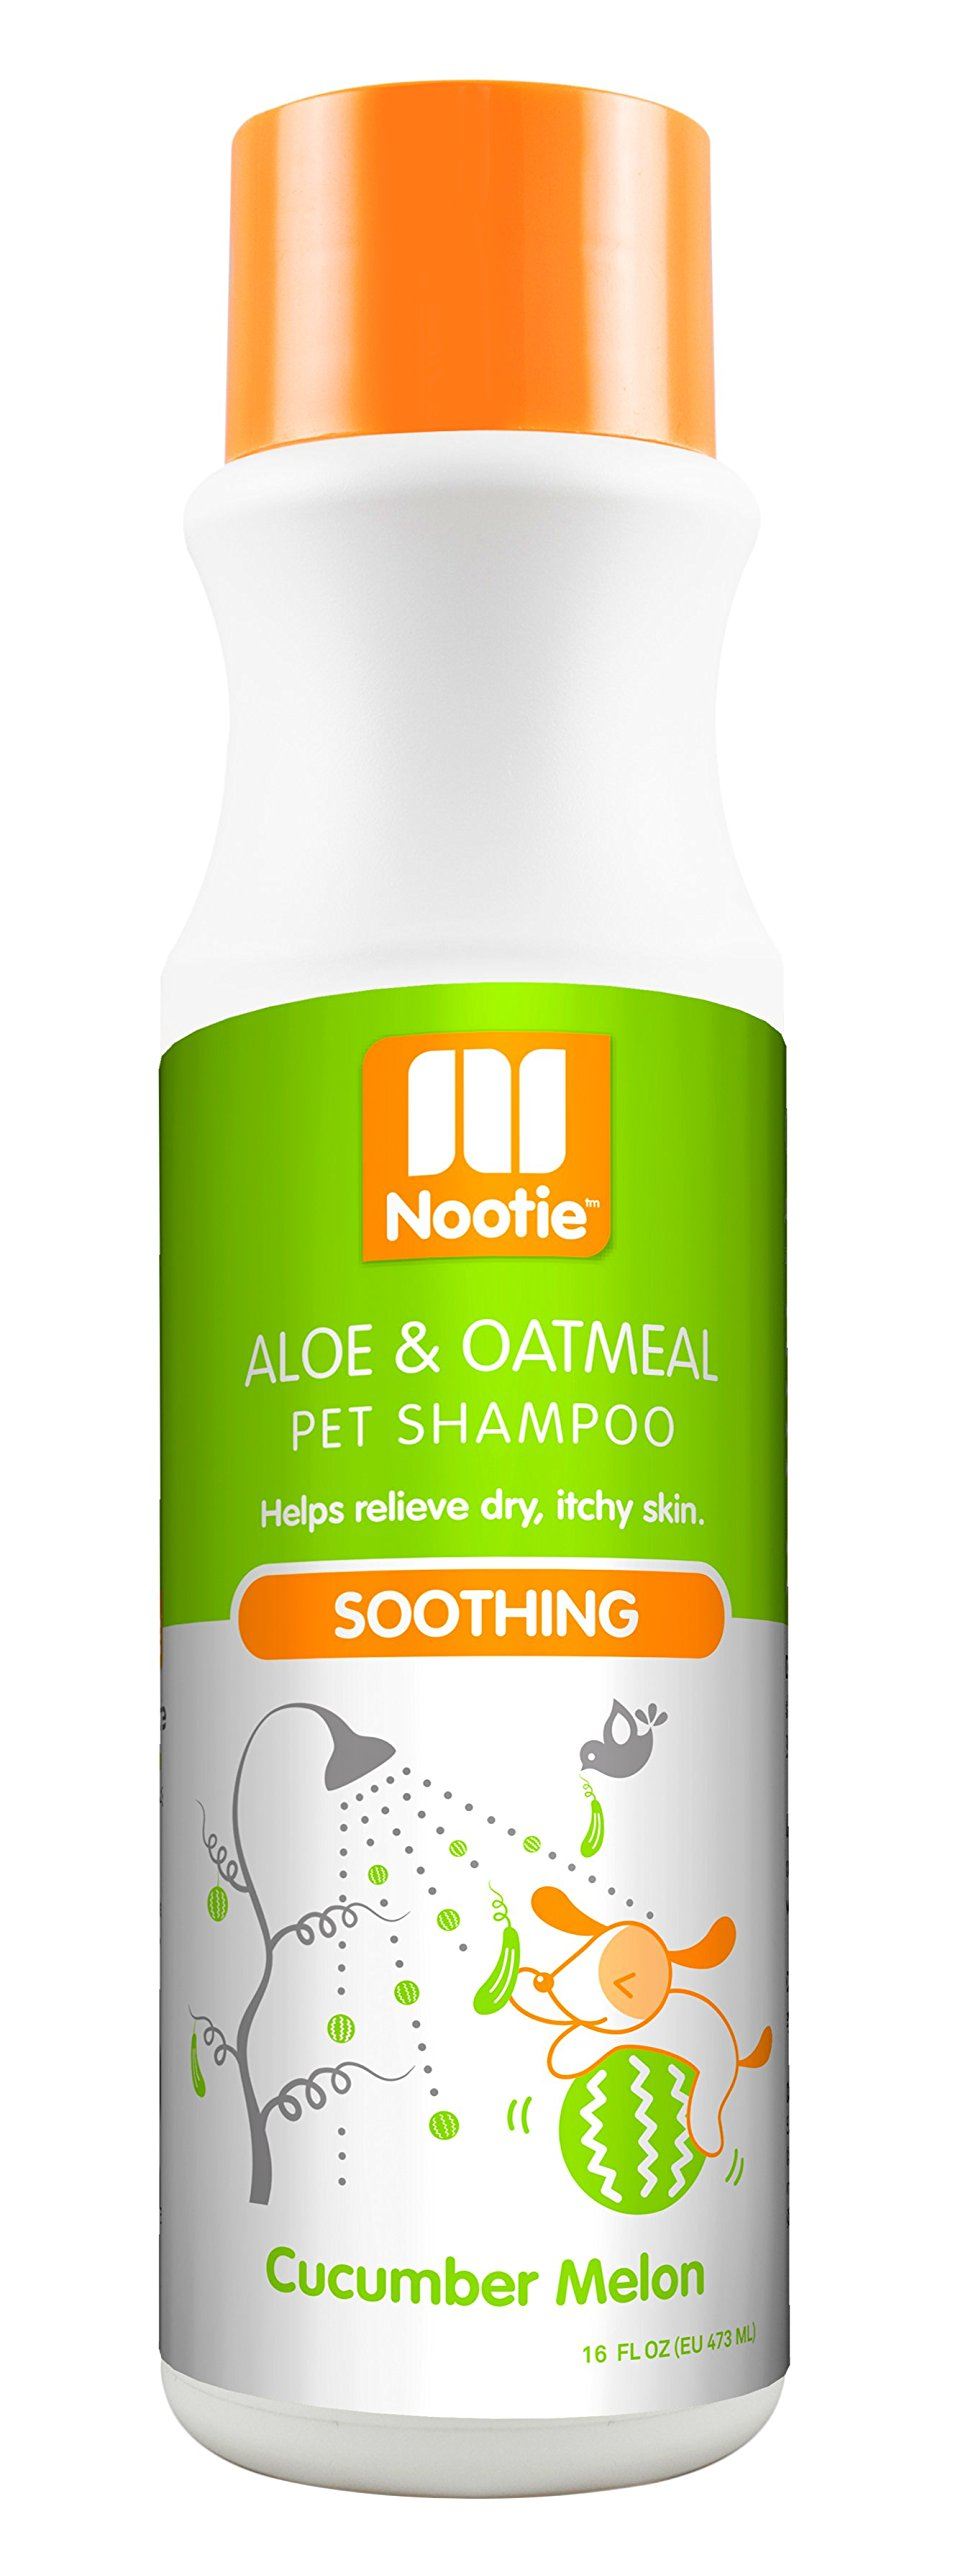 Nootie Cucumber Melon Soothing with Aloe and Oatmeal Pet Shampoo, 16 oz